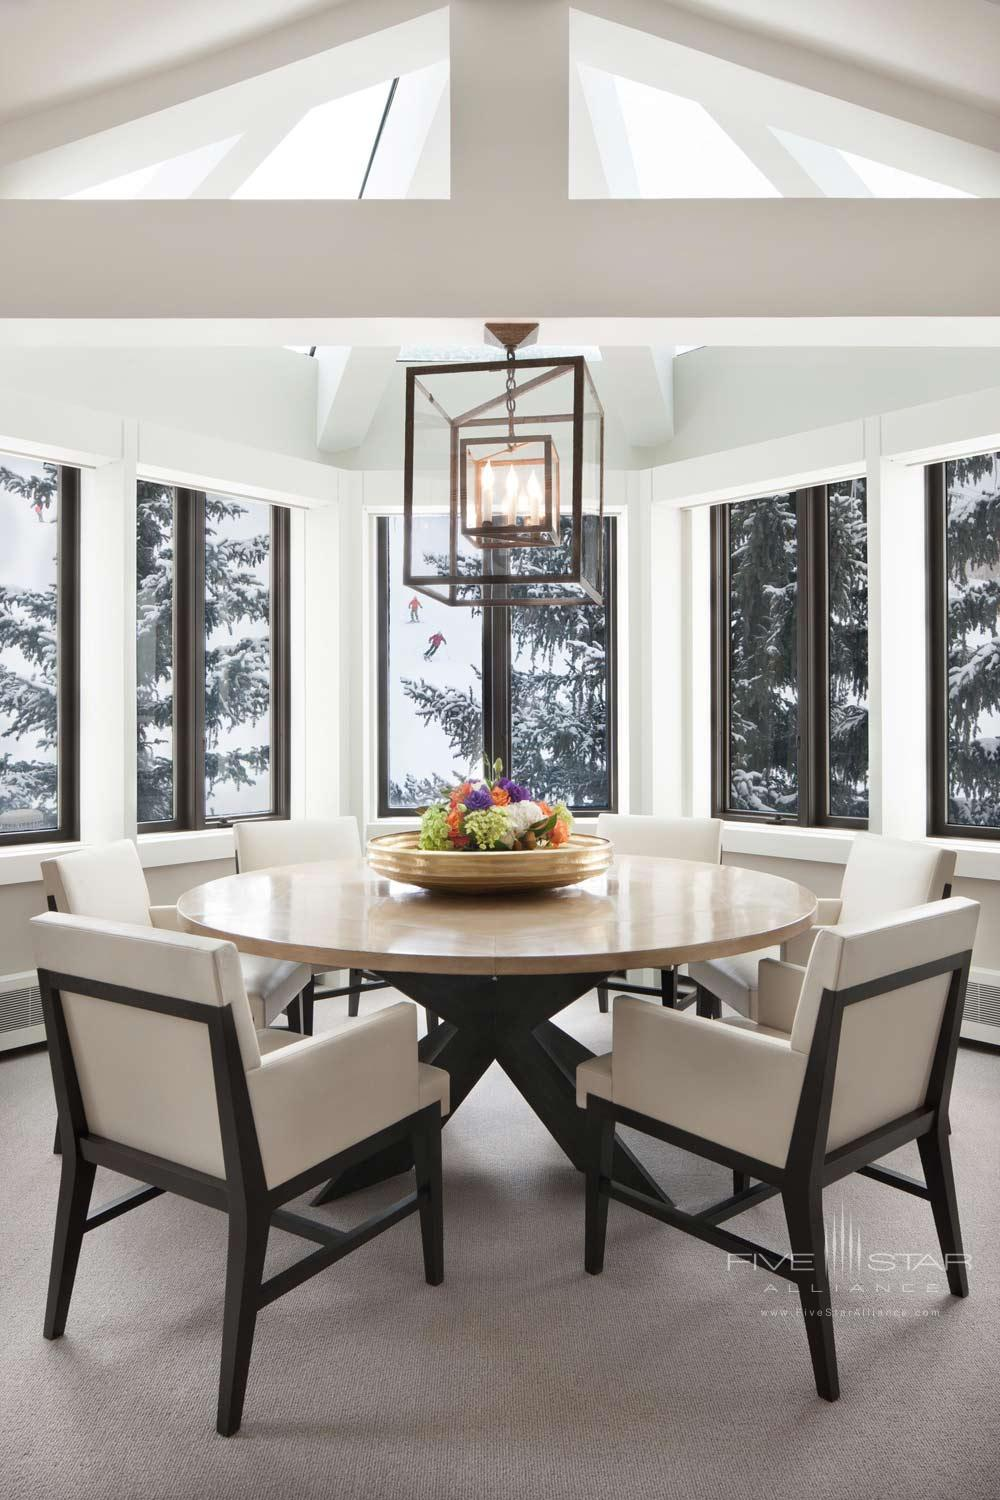 Little Nell Suite Dining at The Little Nell, Aspen, CO